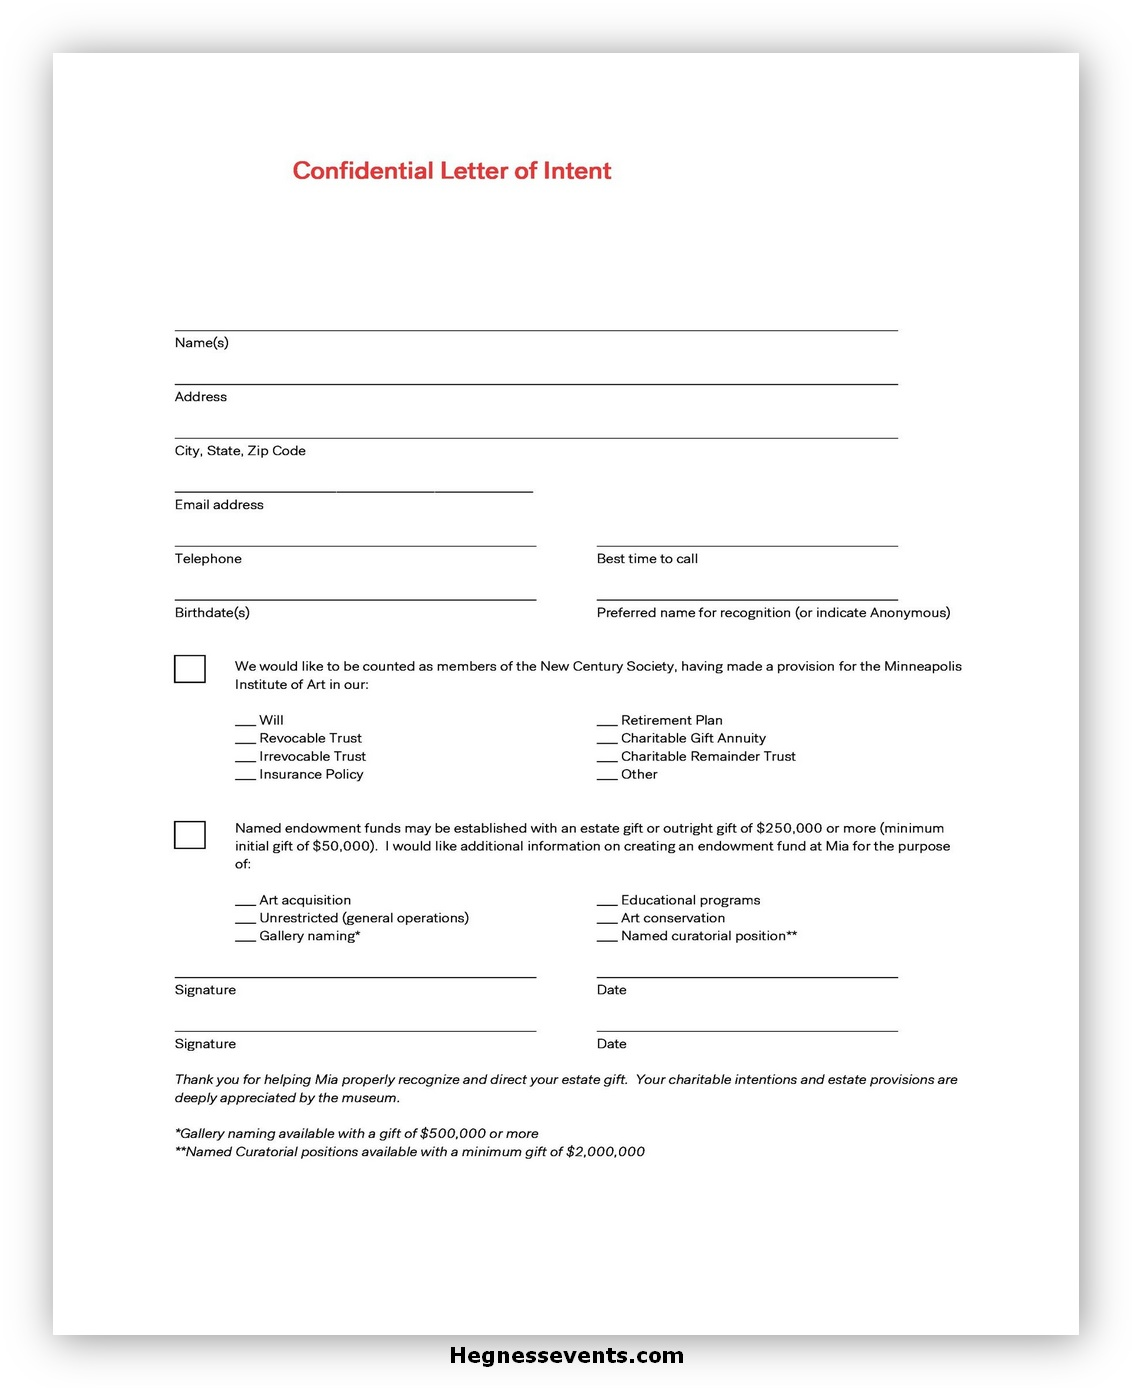 Sample Letter of Intent 06